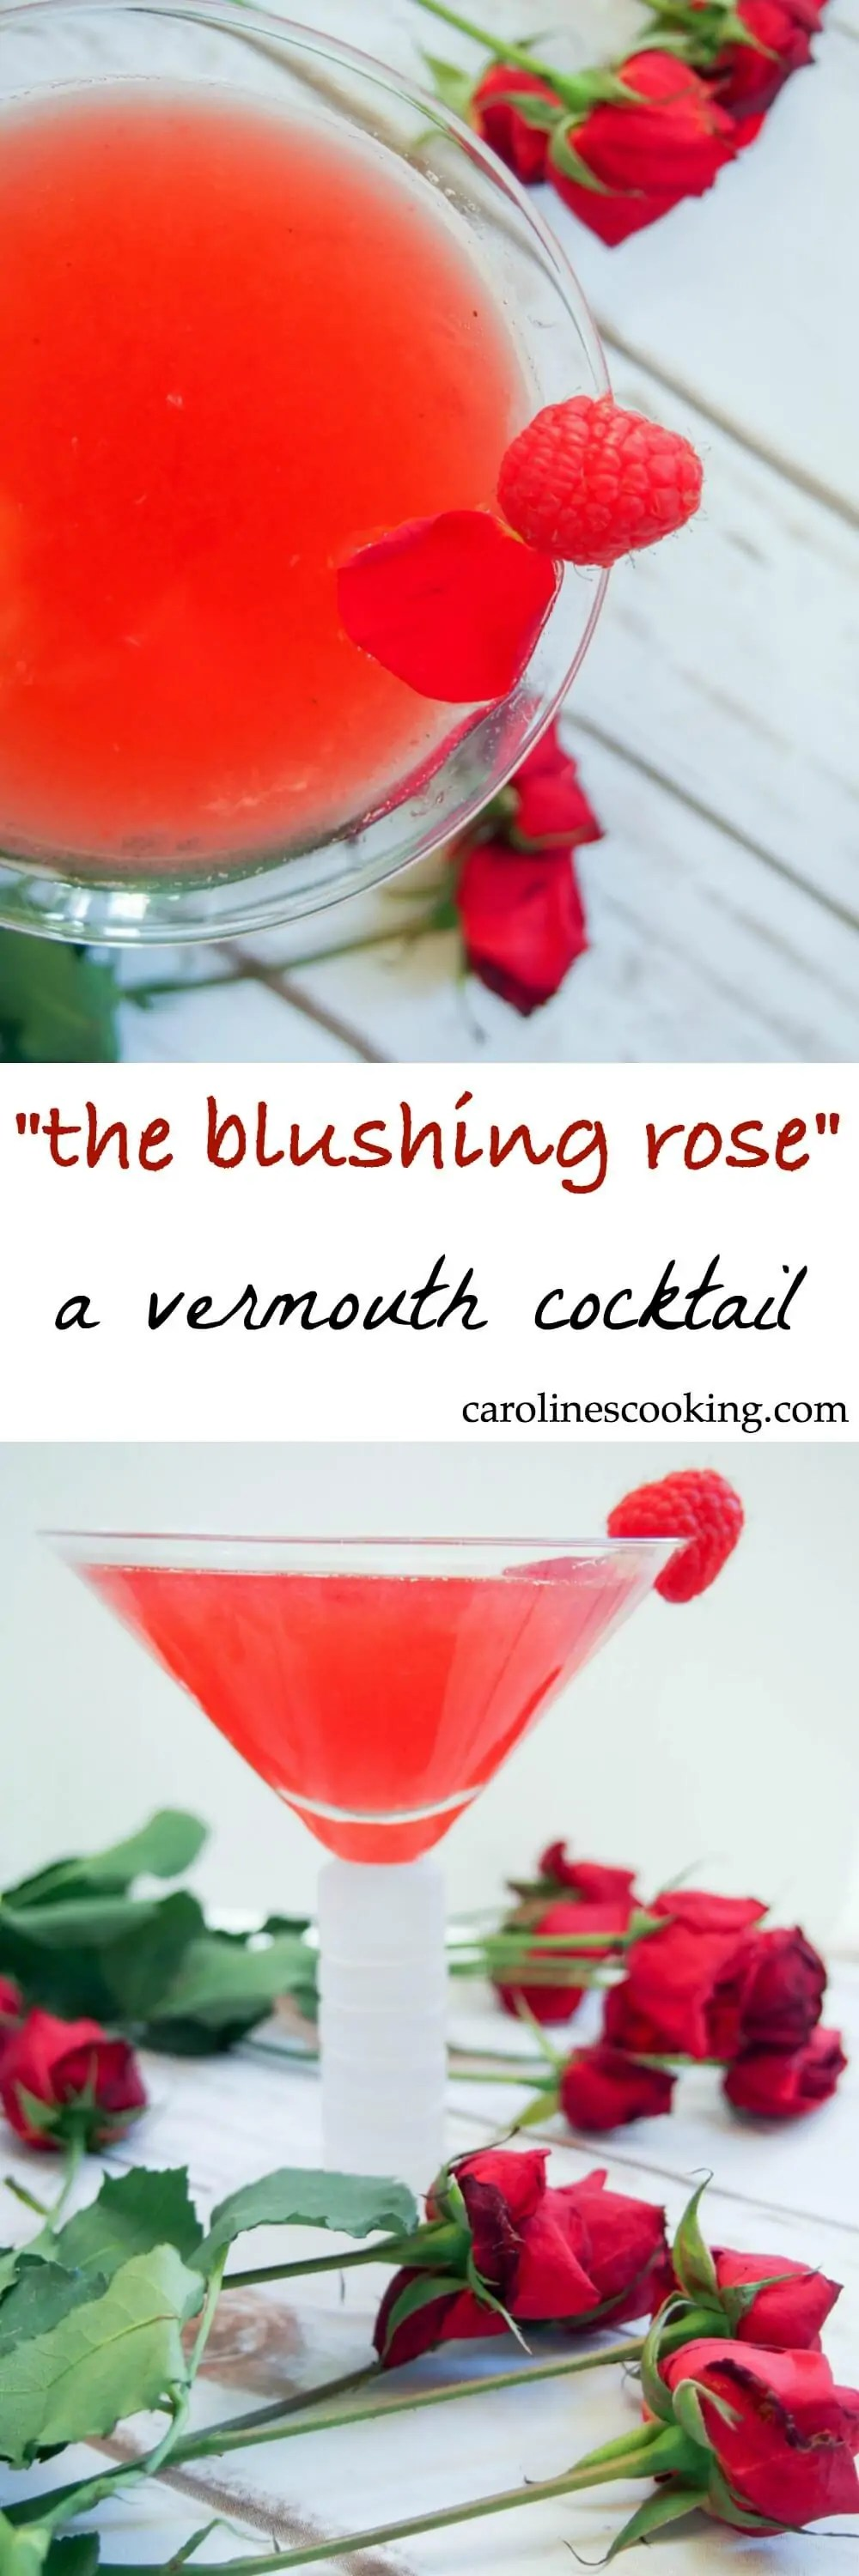 This vermouth cocktail, the blushing rose, might seem a little unusual, but it's a deliciously fragrant and flavorful drink. And perfectly pink!